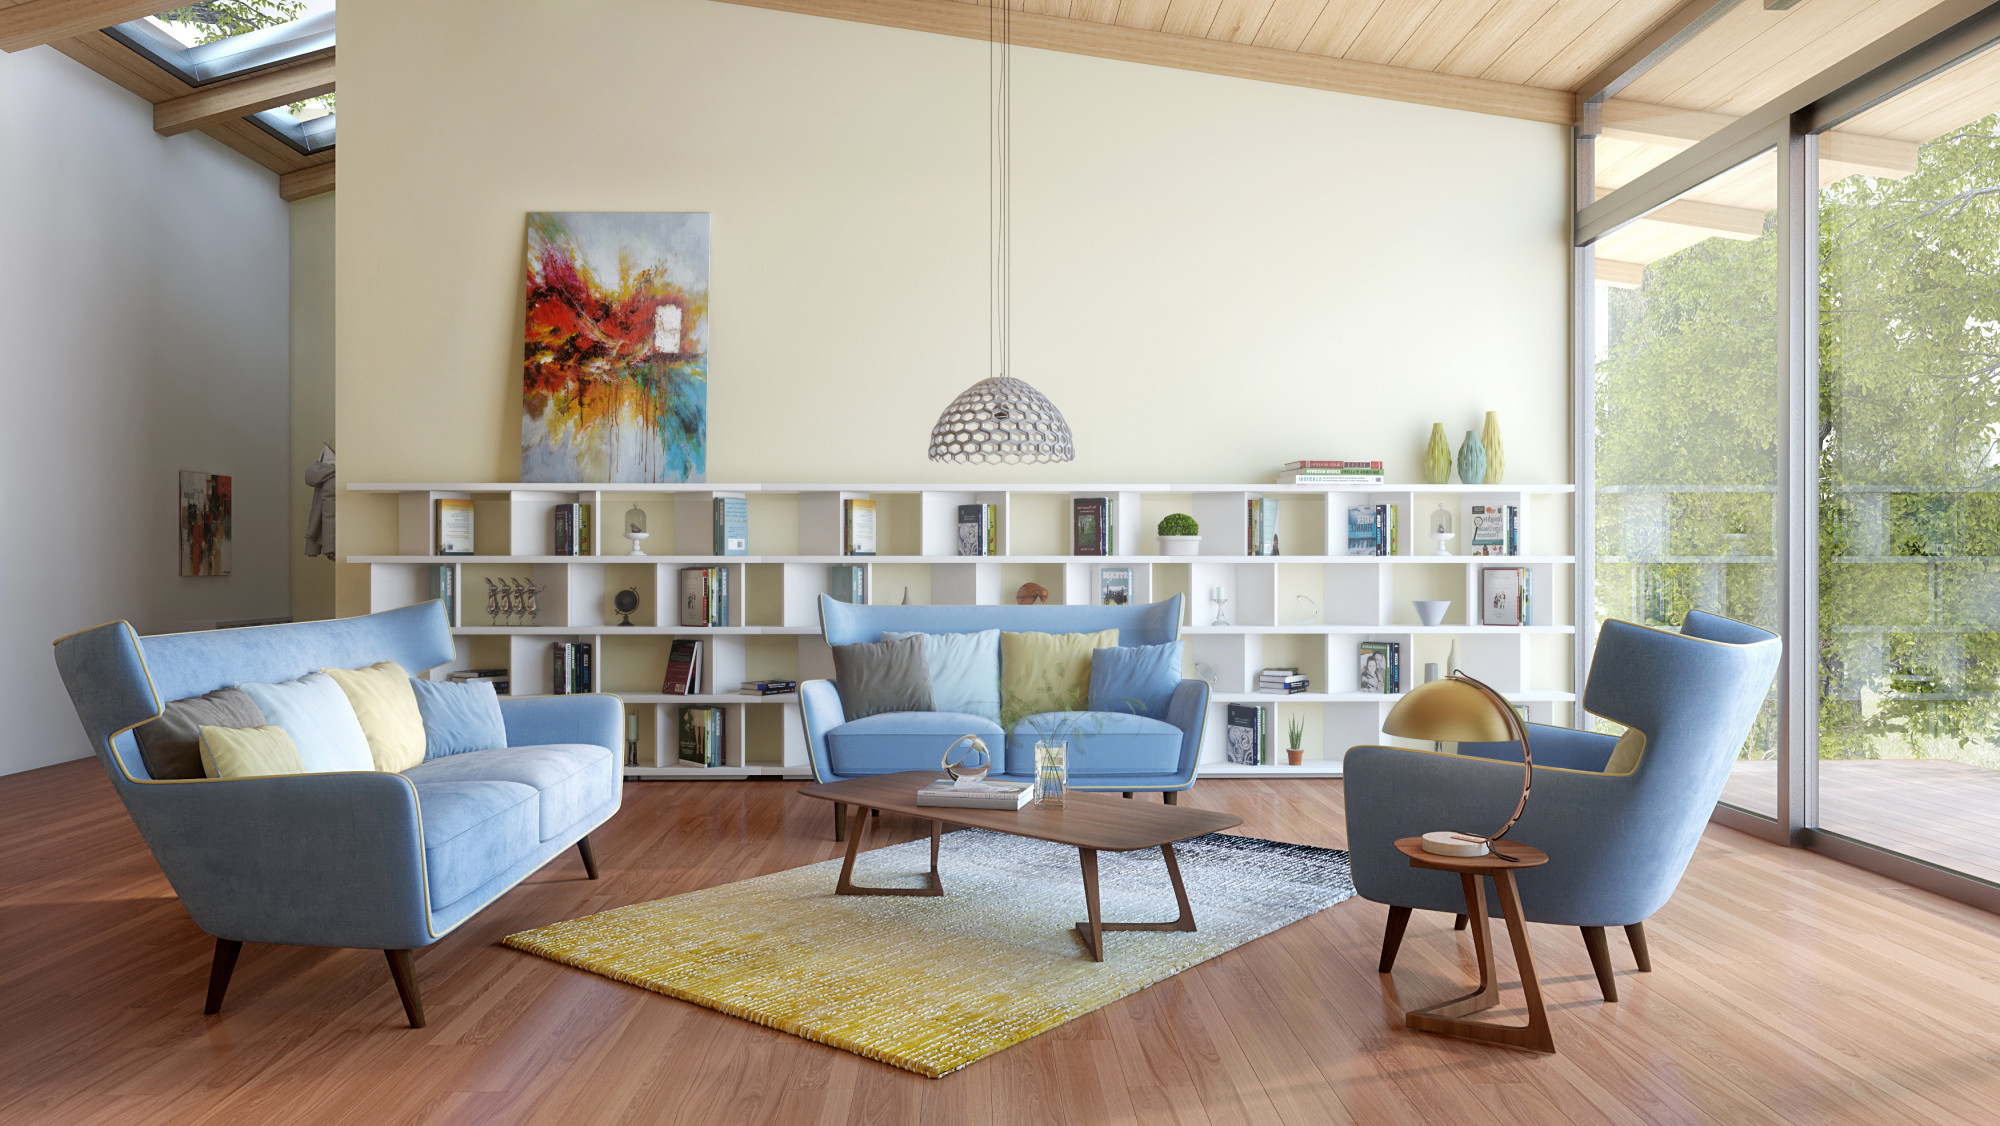 beautiful modern interior design with small yellow rugs living rooms decorating ideas